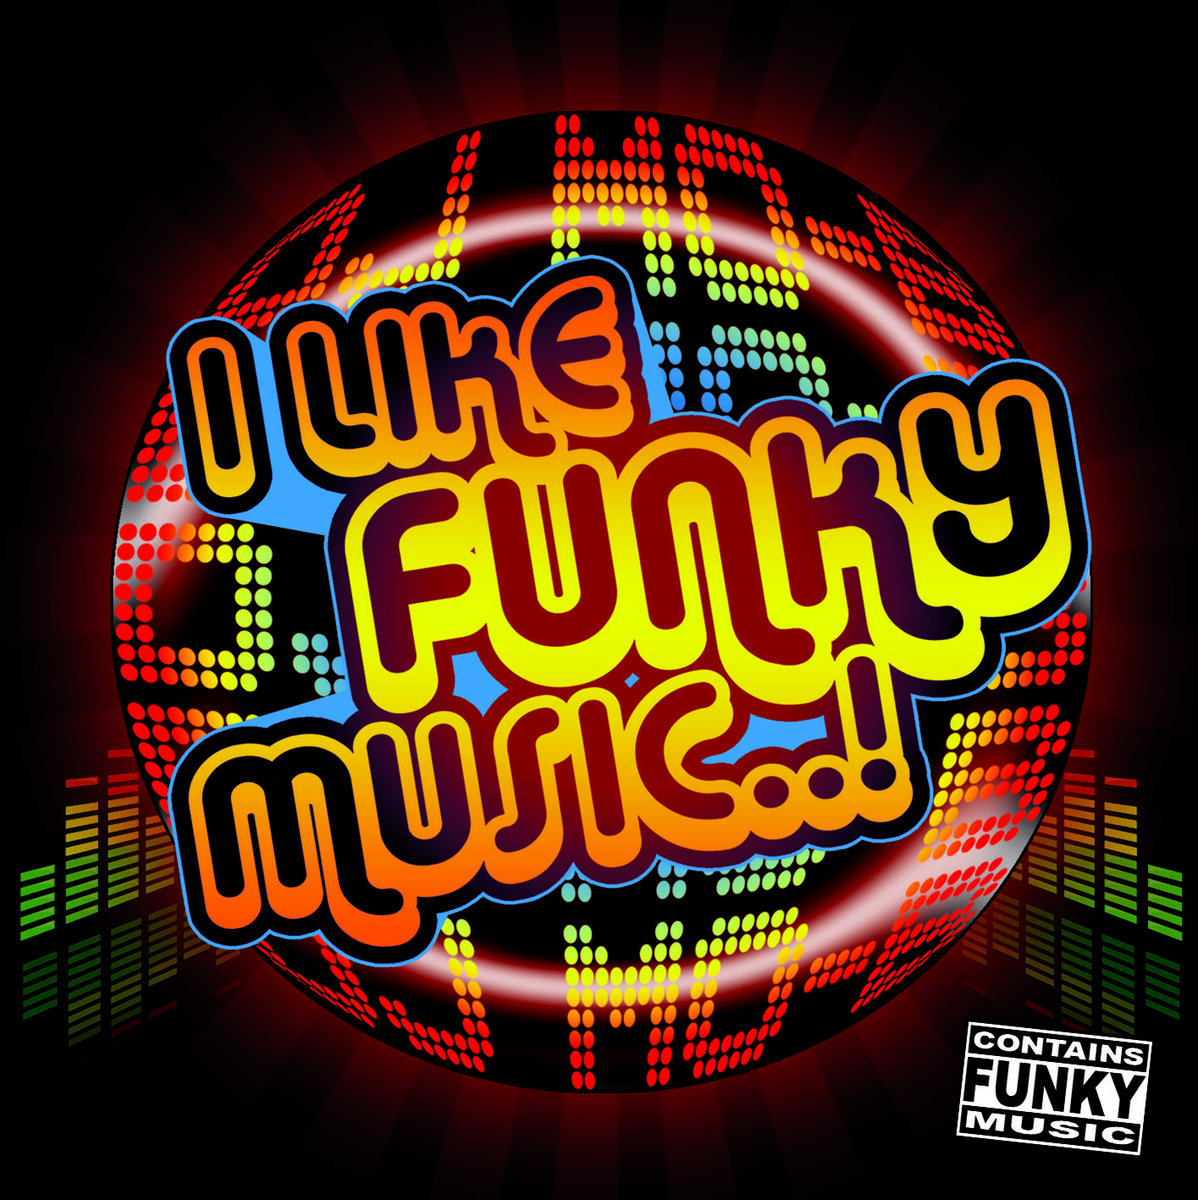 from I Like Funky Music by DJ Mo-B: mo-beats.bandcamp.com/track/jam-on-it